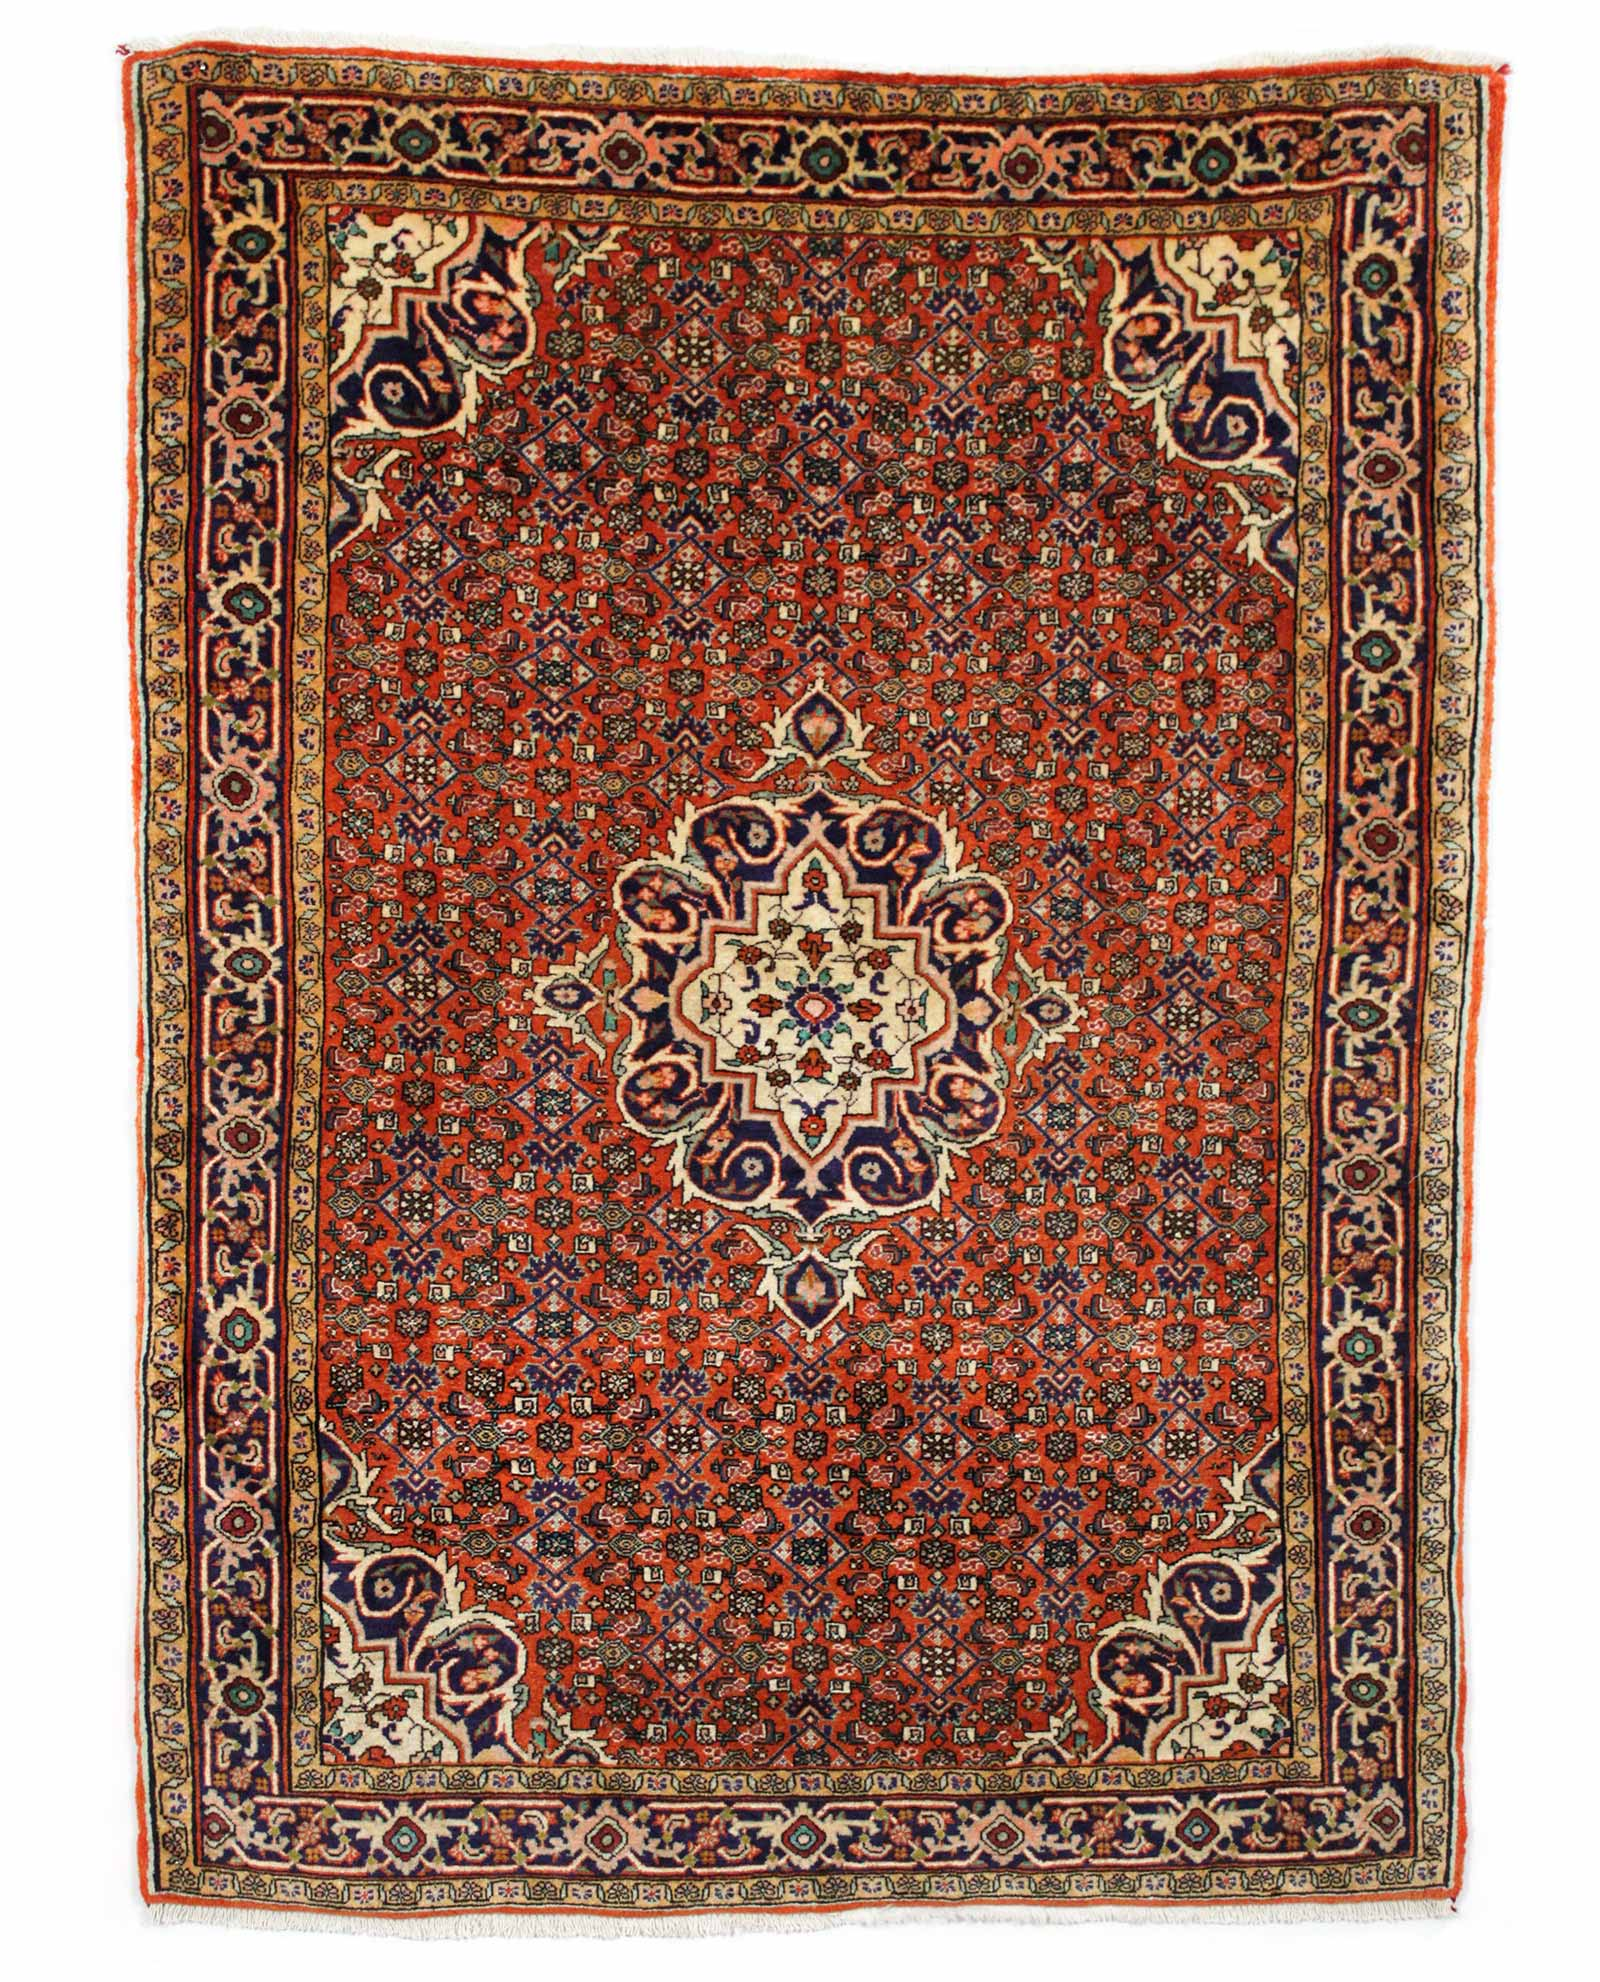 tapis persan bijar 14974 iranian carpet. Black Bedroom Furniture Sets. Home Design Ideas